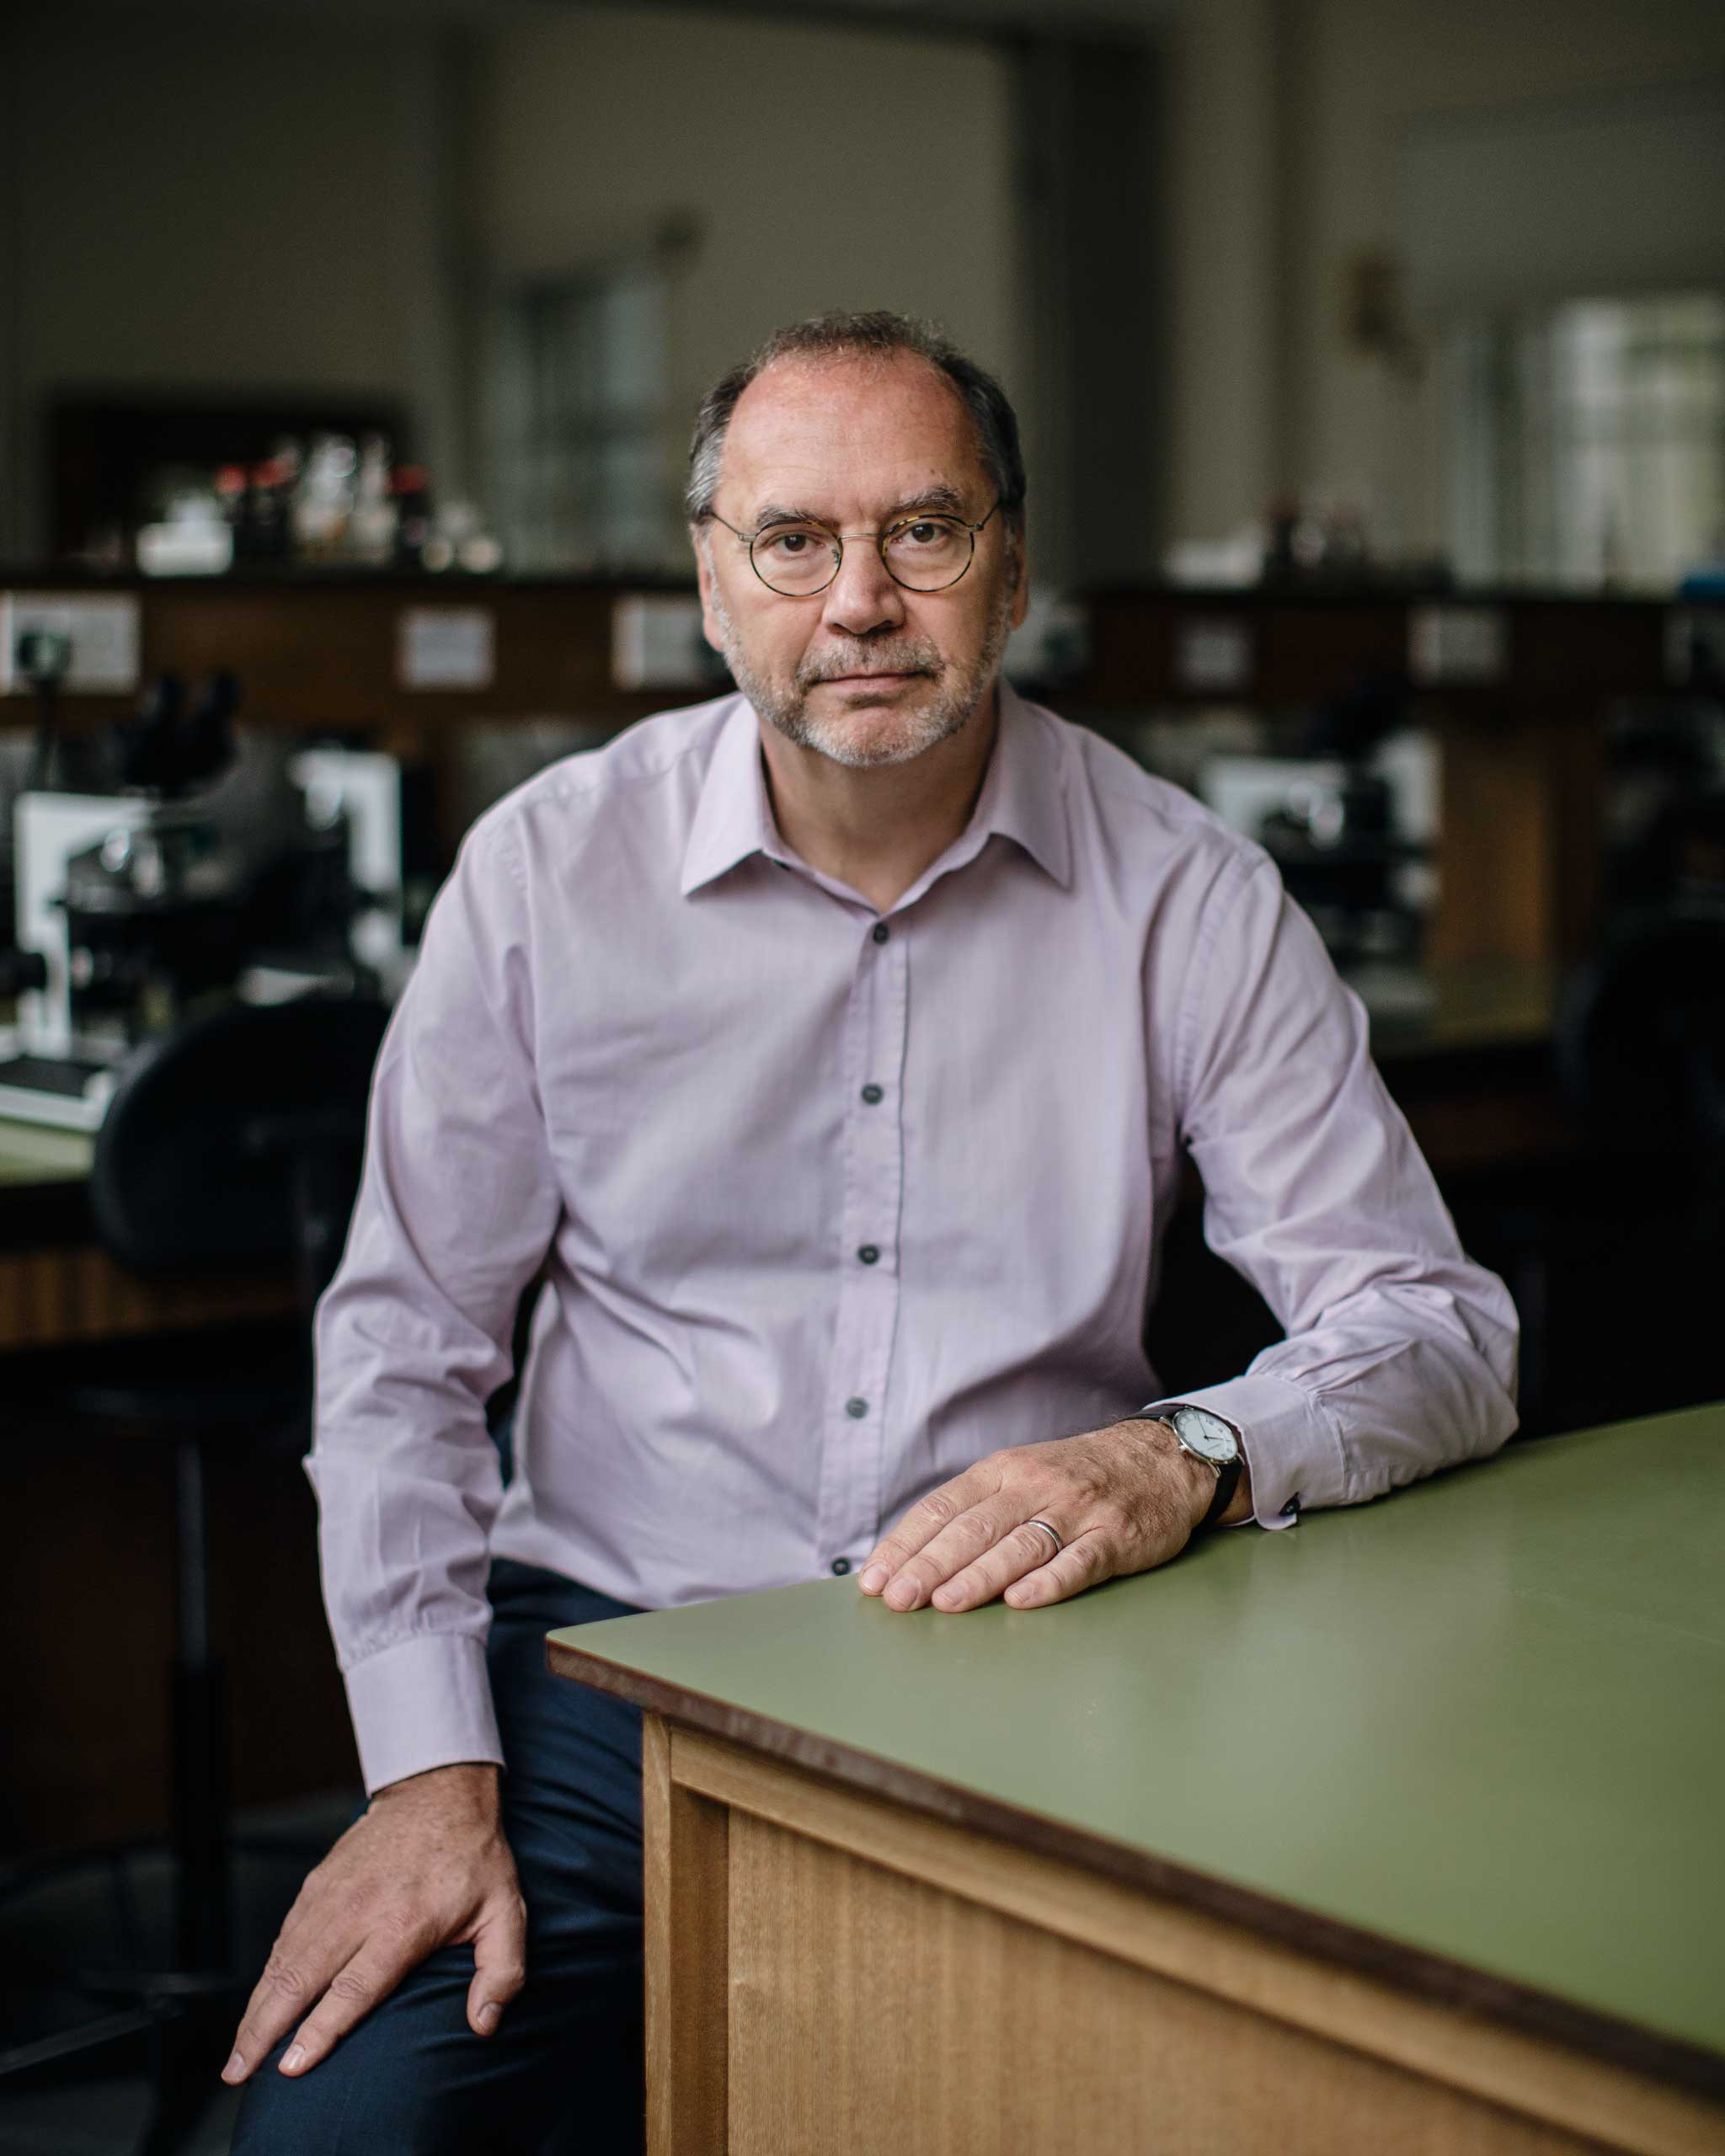 Prof. Peter Piot photographed in a lab at the London School of Hygiene and Tropical Medicine. Nov. 12, 2014. He discovered the Ebola virus in 1976.